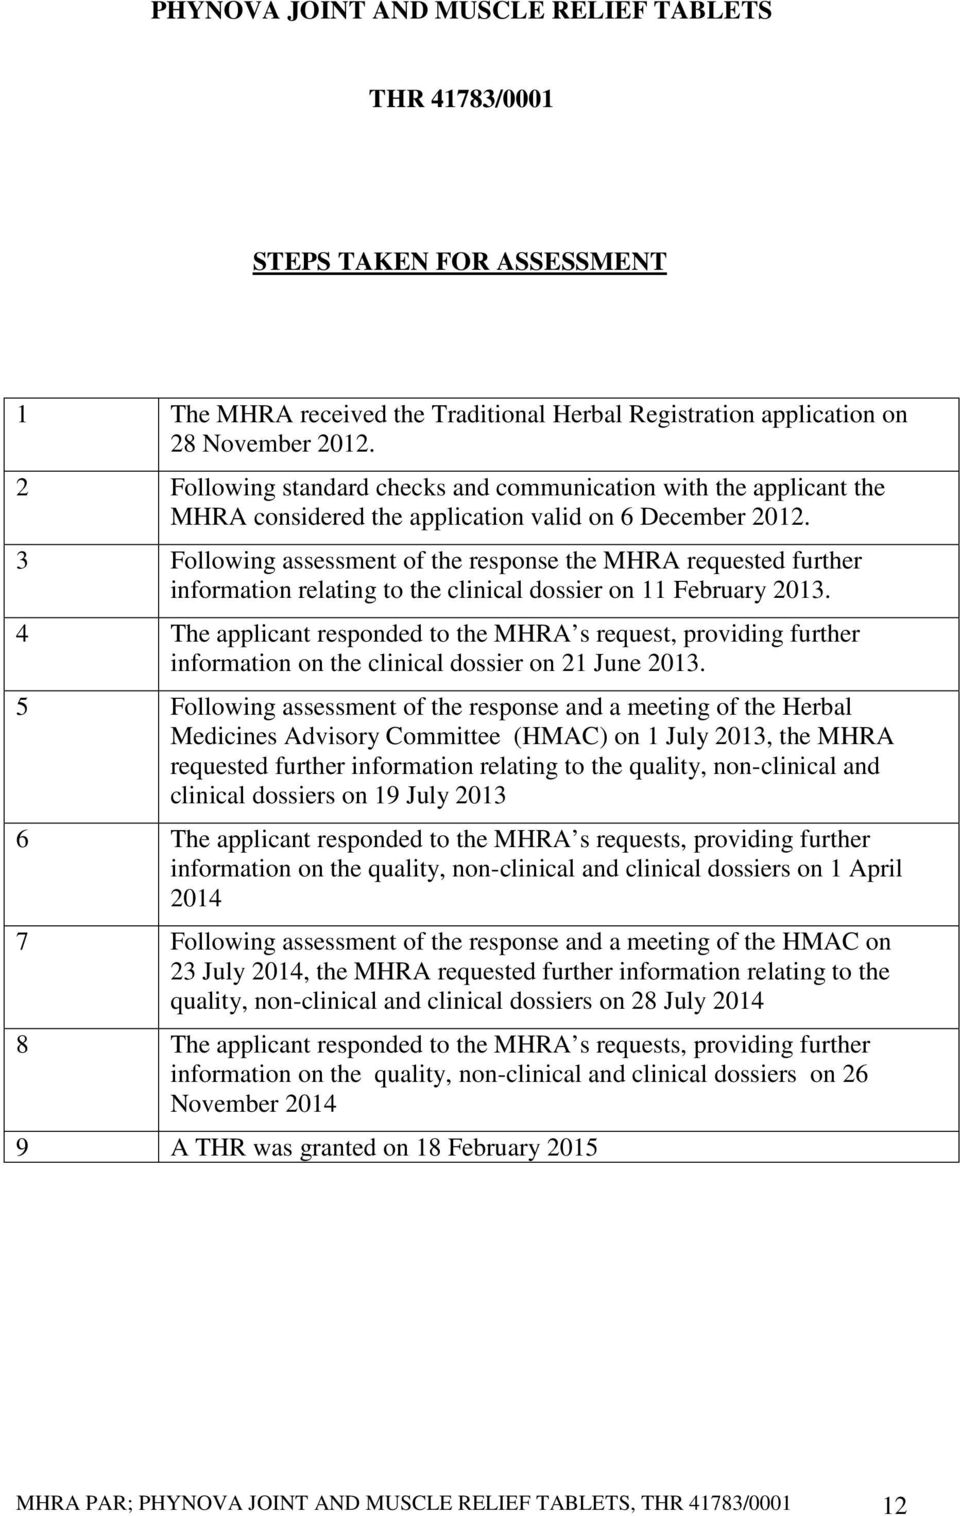 3 Following assessment of the response the MHRA requested further information relating to the clinical dossier on 11 February 2013.